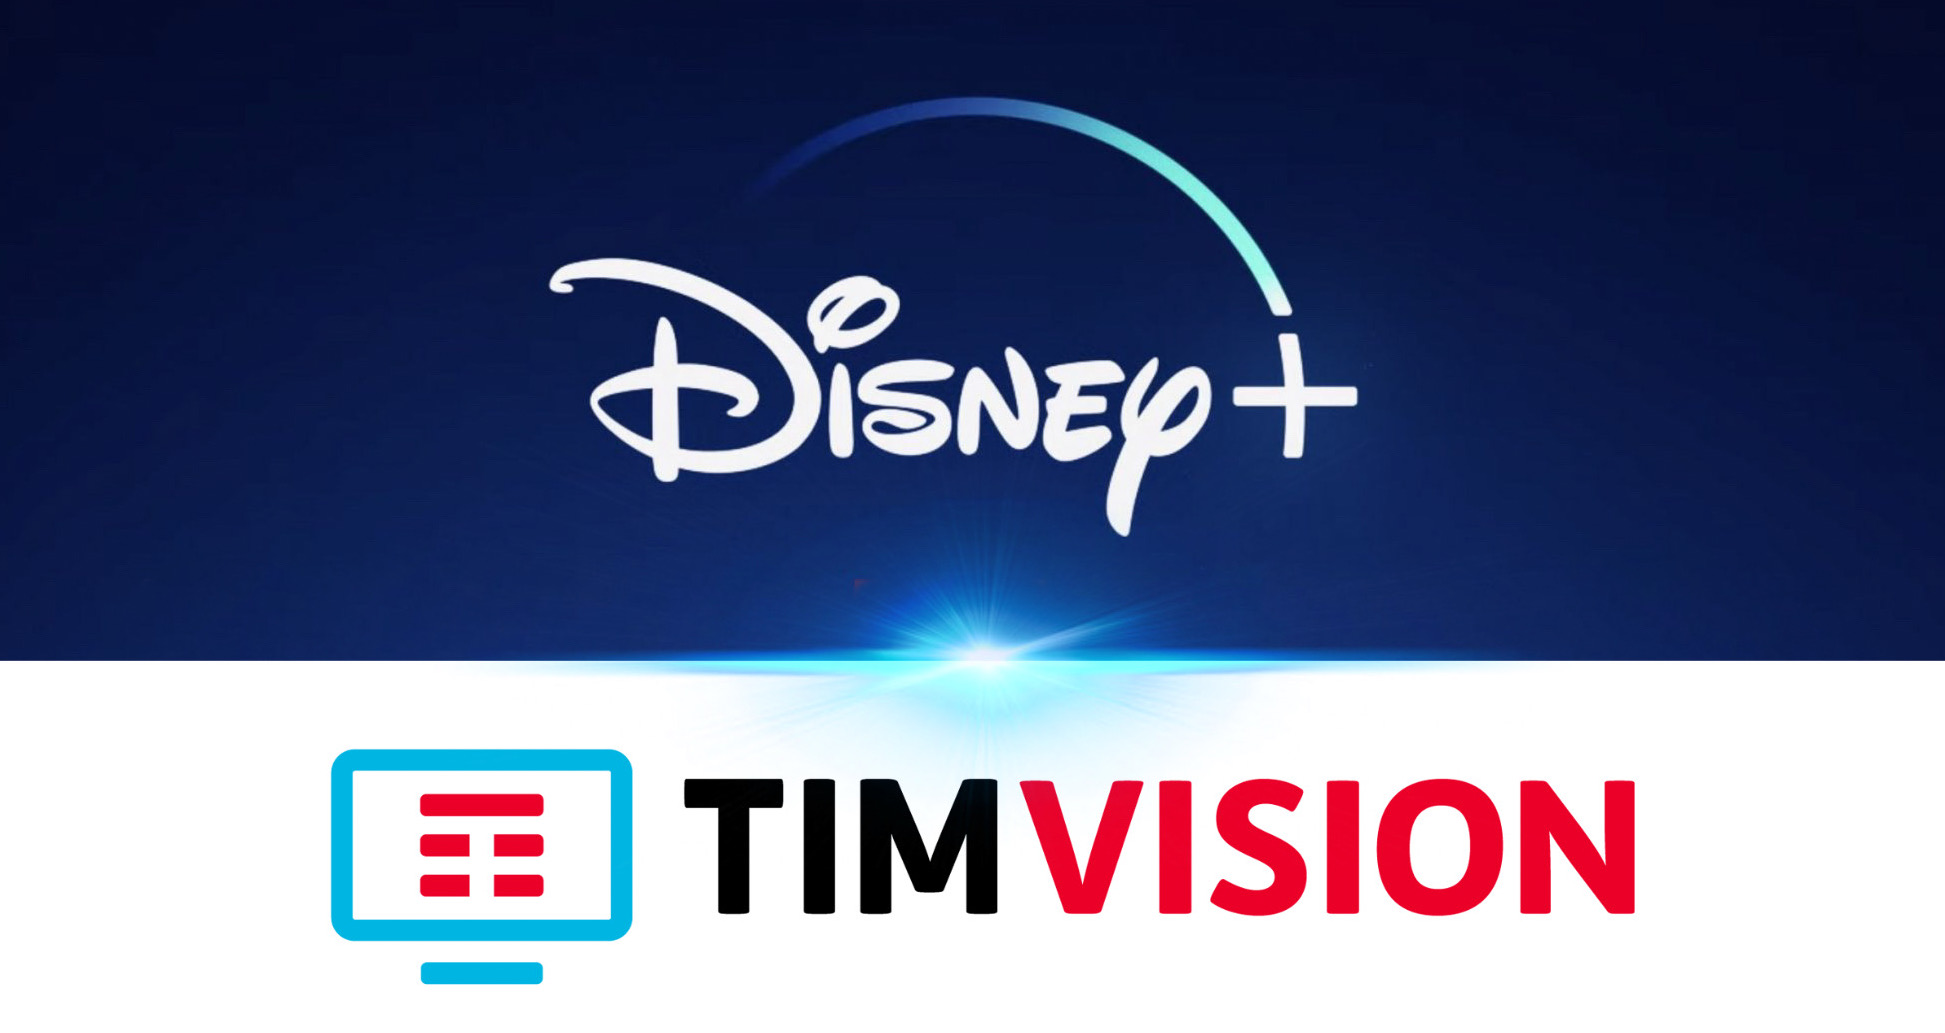 Disney+ on Timvision